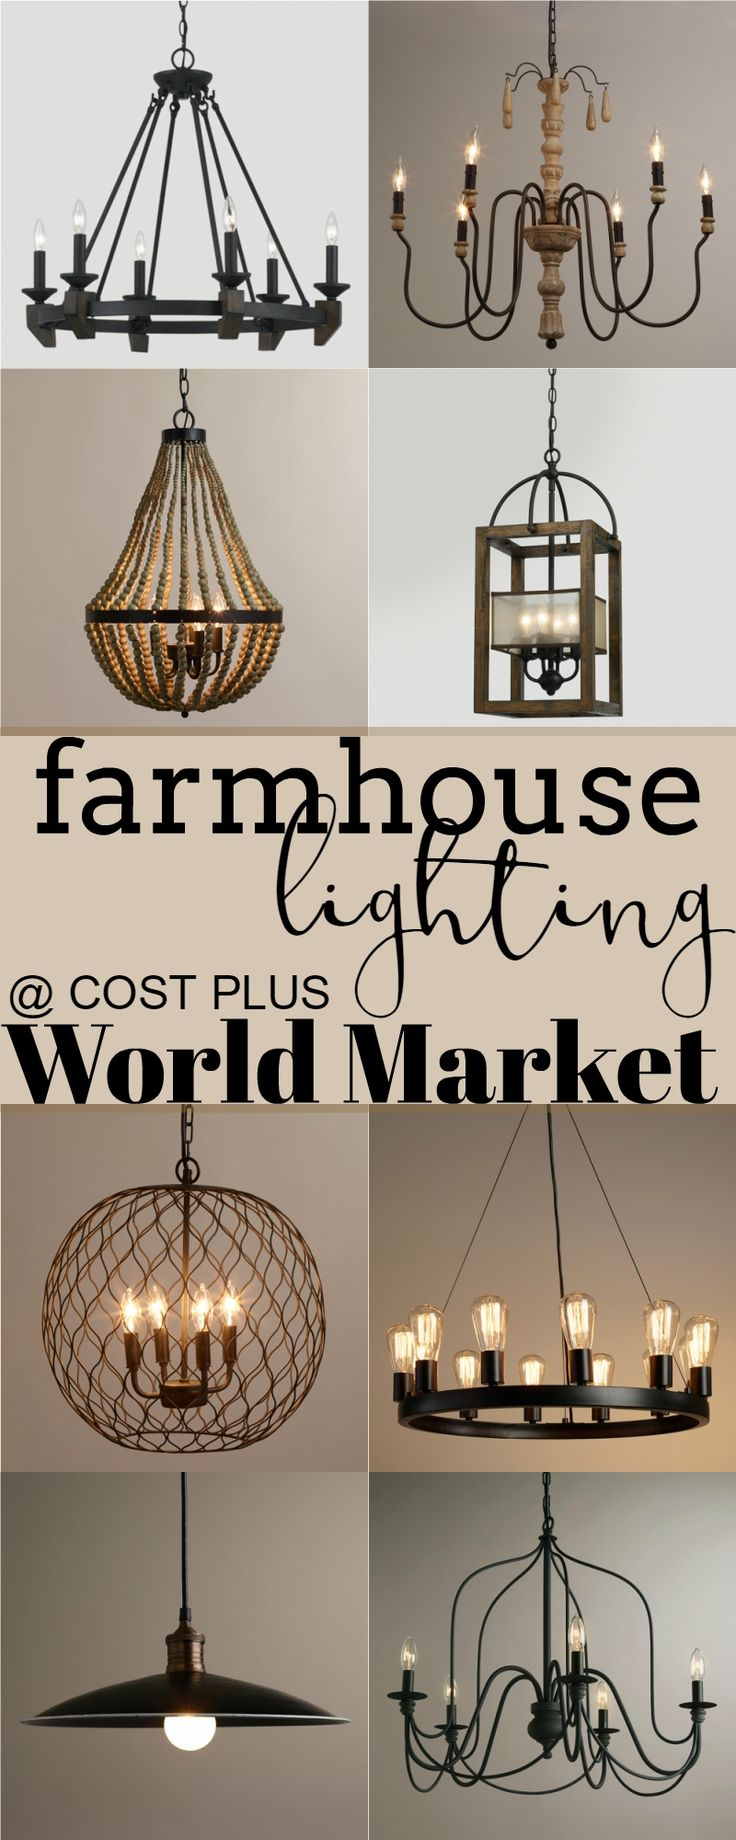 Best 25+ Rustic lighting ideas on Pinterest | Rustic light ...